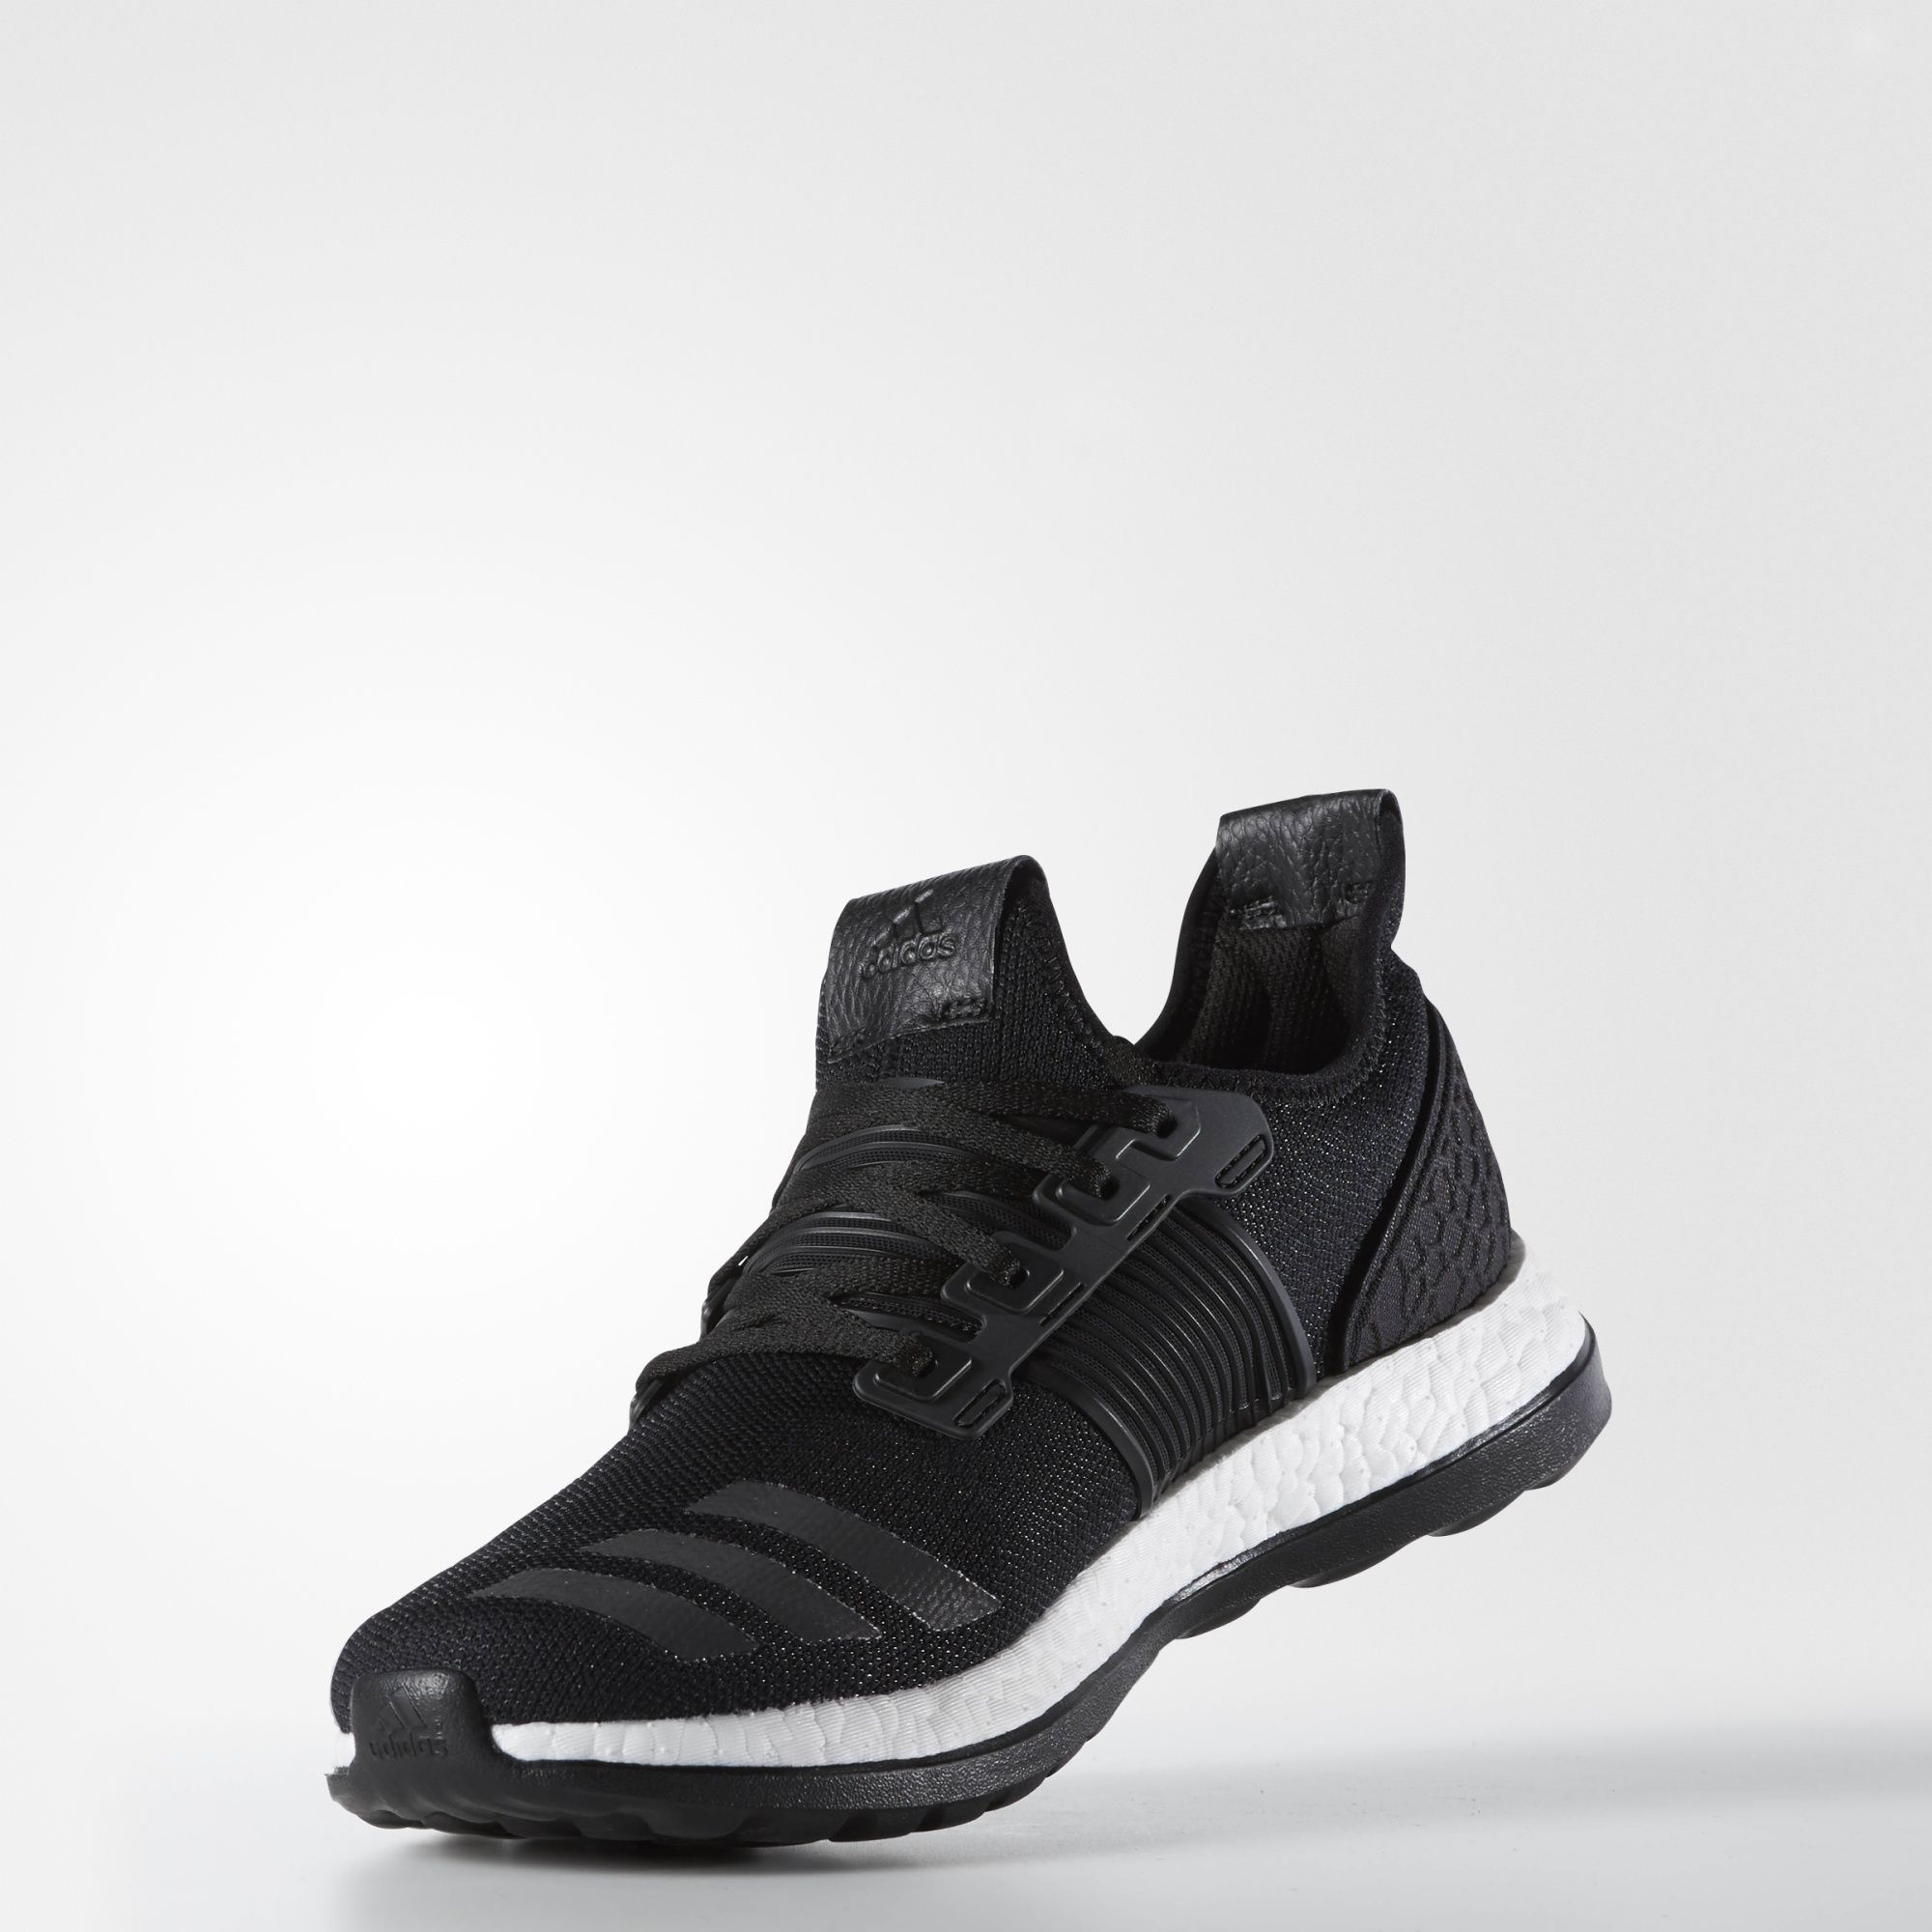 adidas pure boost zg prime shoes